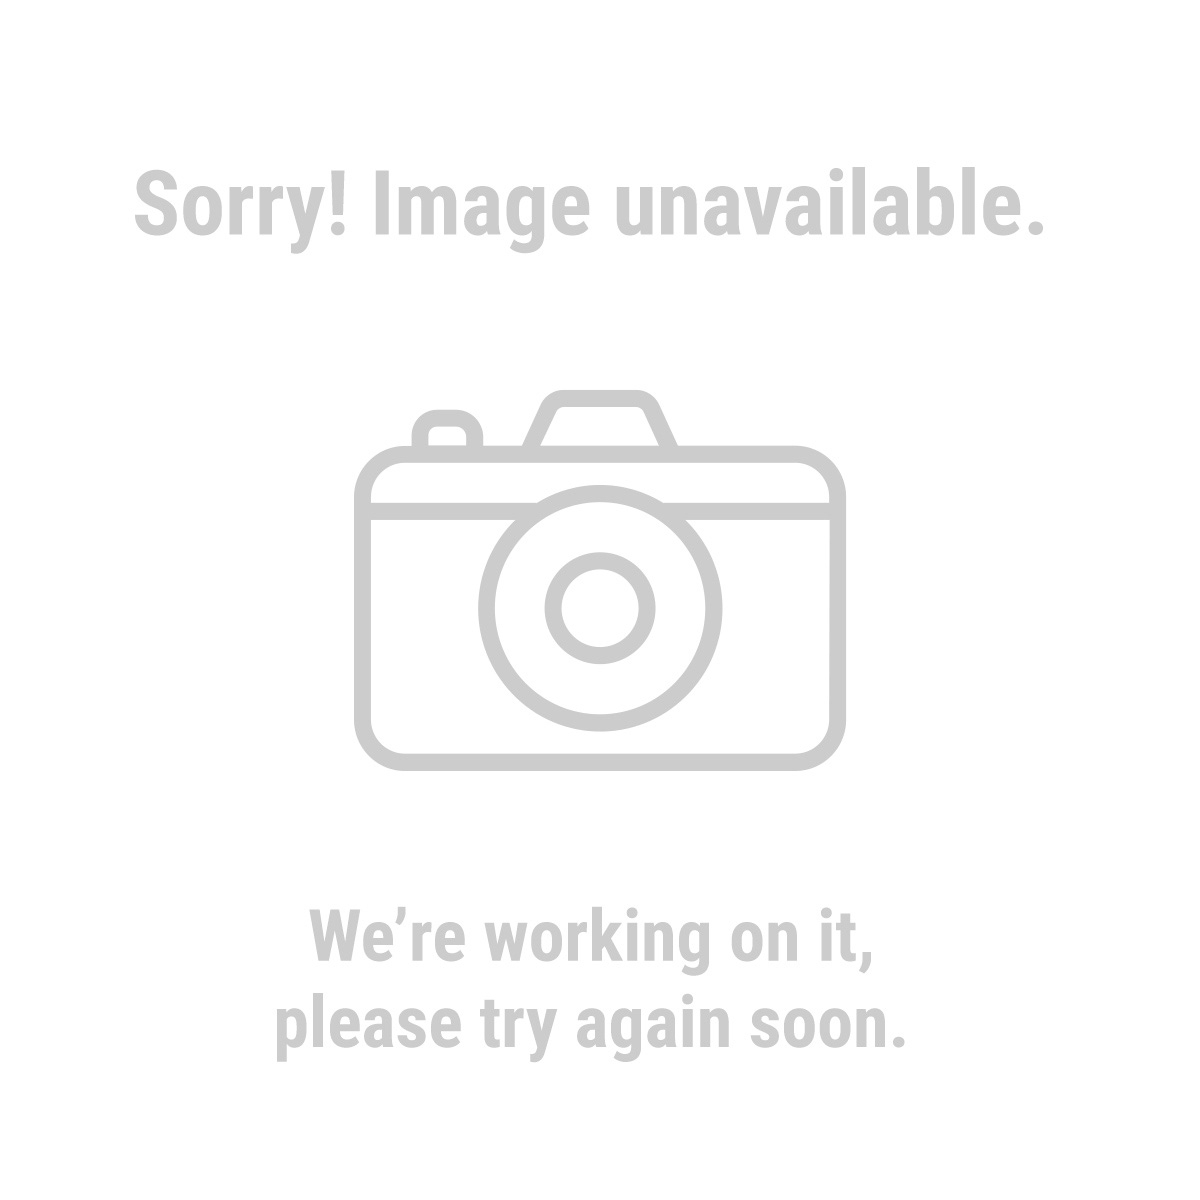 Central Pneumatic 69865 2 Horsepower, 29 gal., 125 Cast Iron Vertical Air Compressor